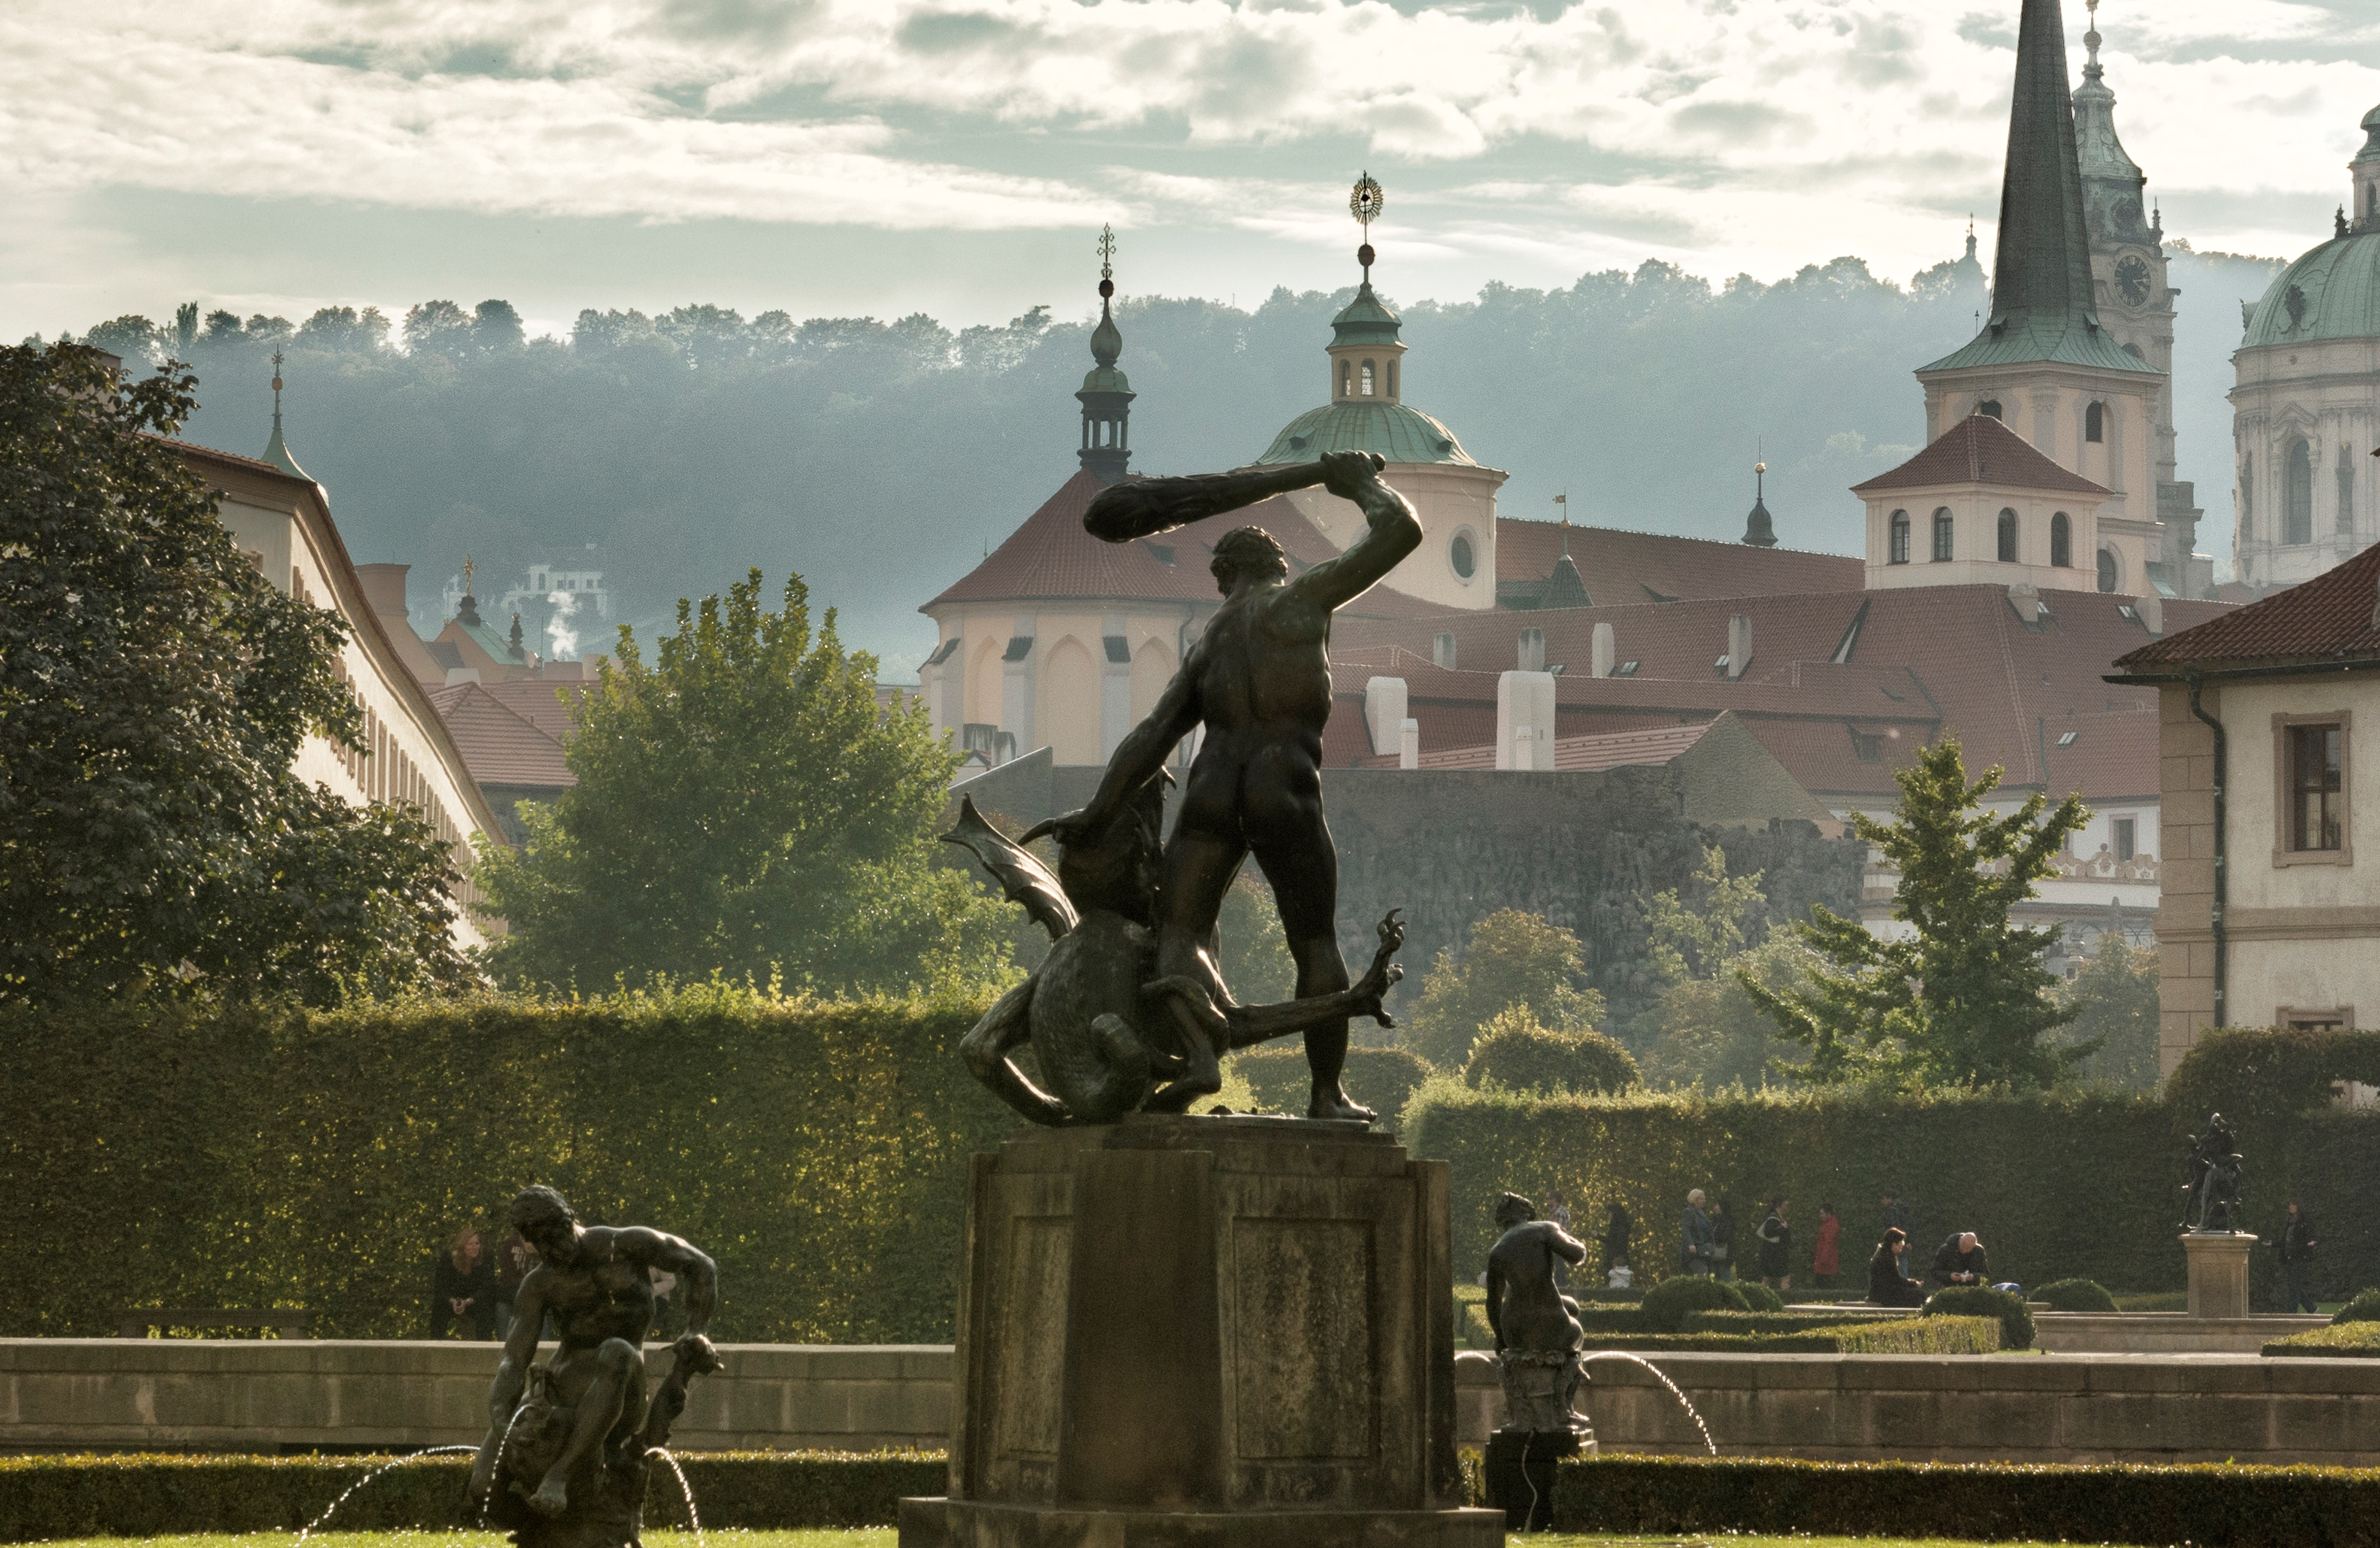 Statue of Hercules and other statues by Adrian de Vries - Prague.eu